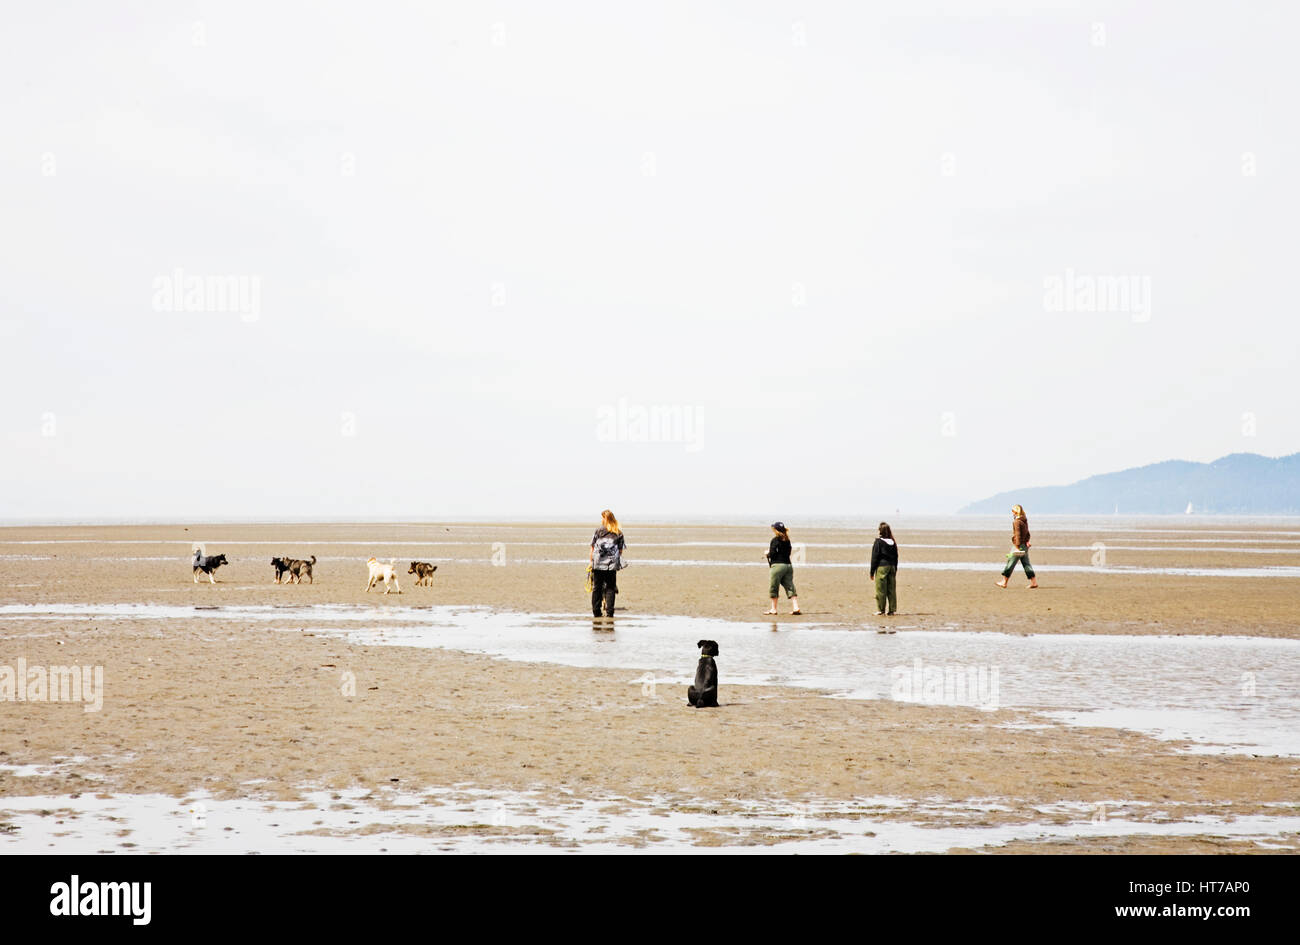 Puppy watching other dogs and people. Vancouver, BC. Canada - Stock Image